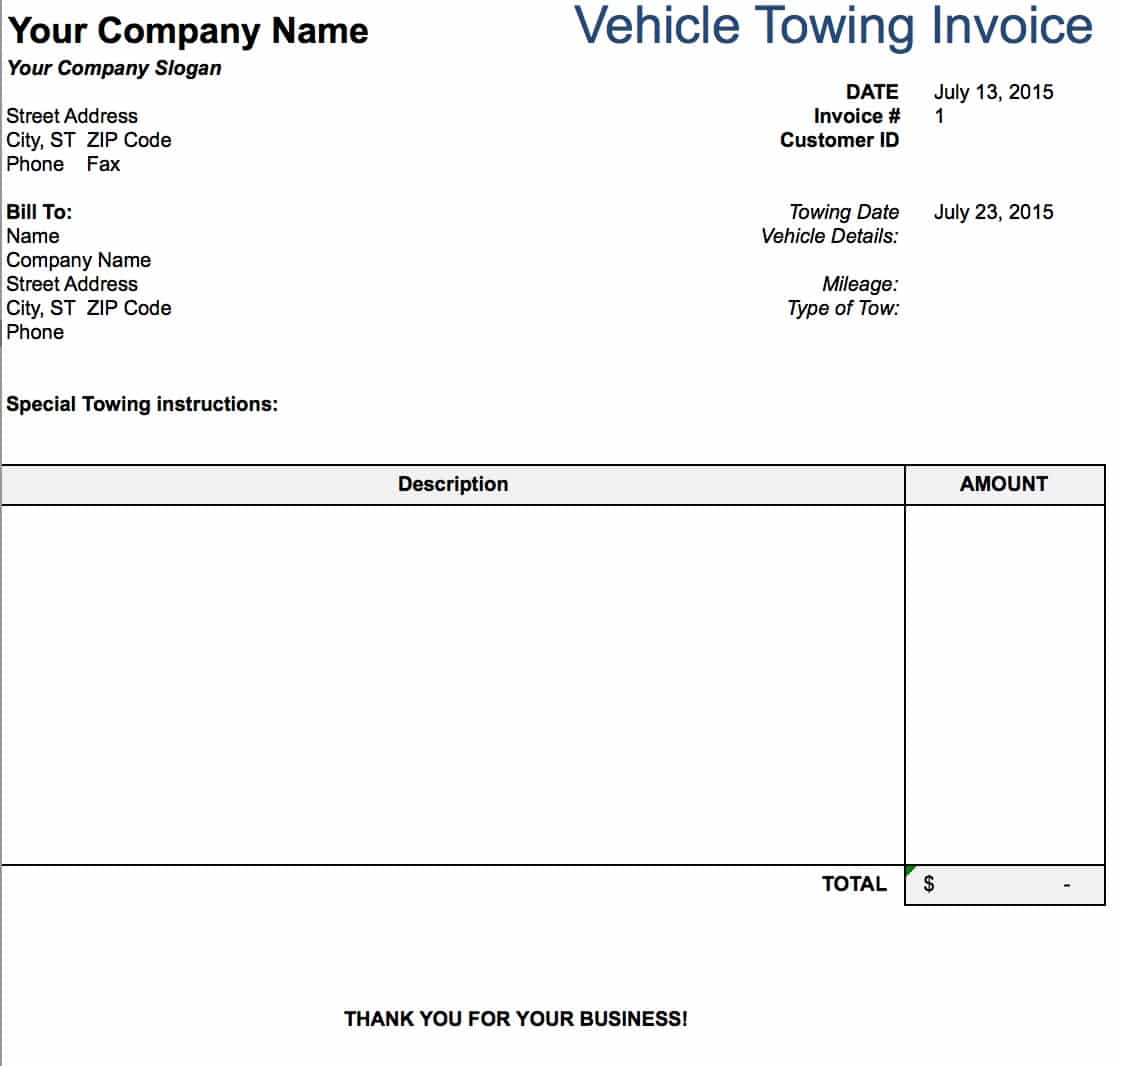 Free Tow Service Invoice Template Excel PDF Word Doc - Blank invoice template free for service business